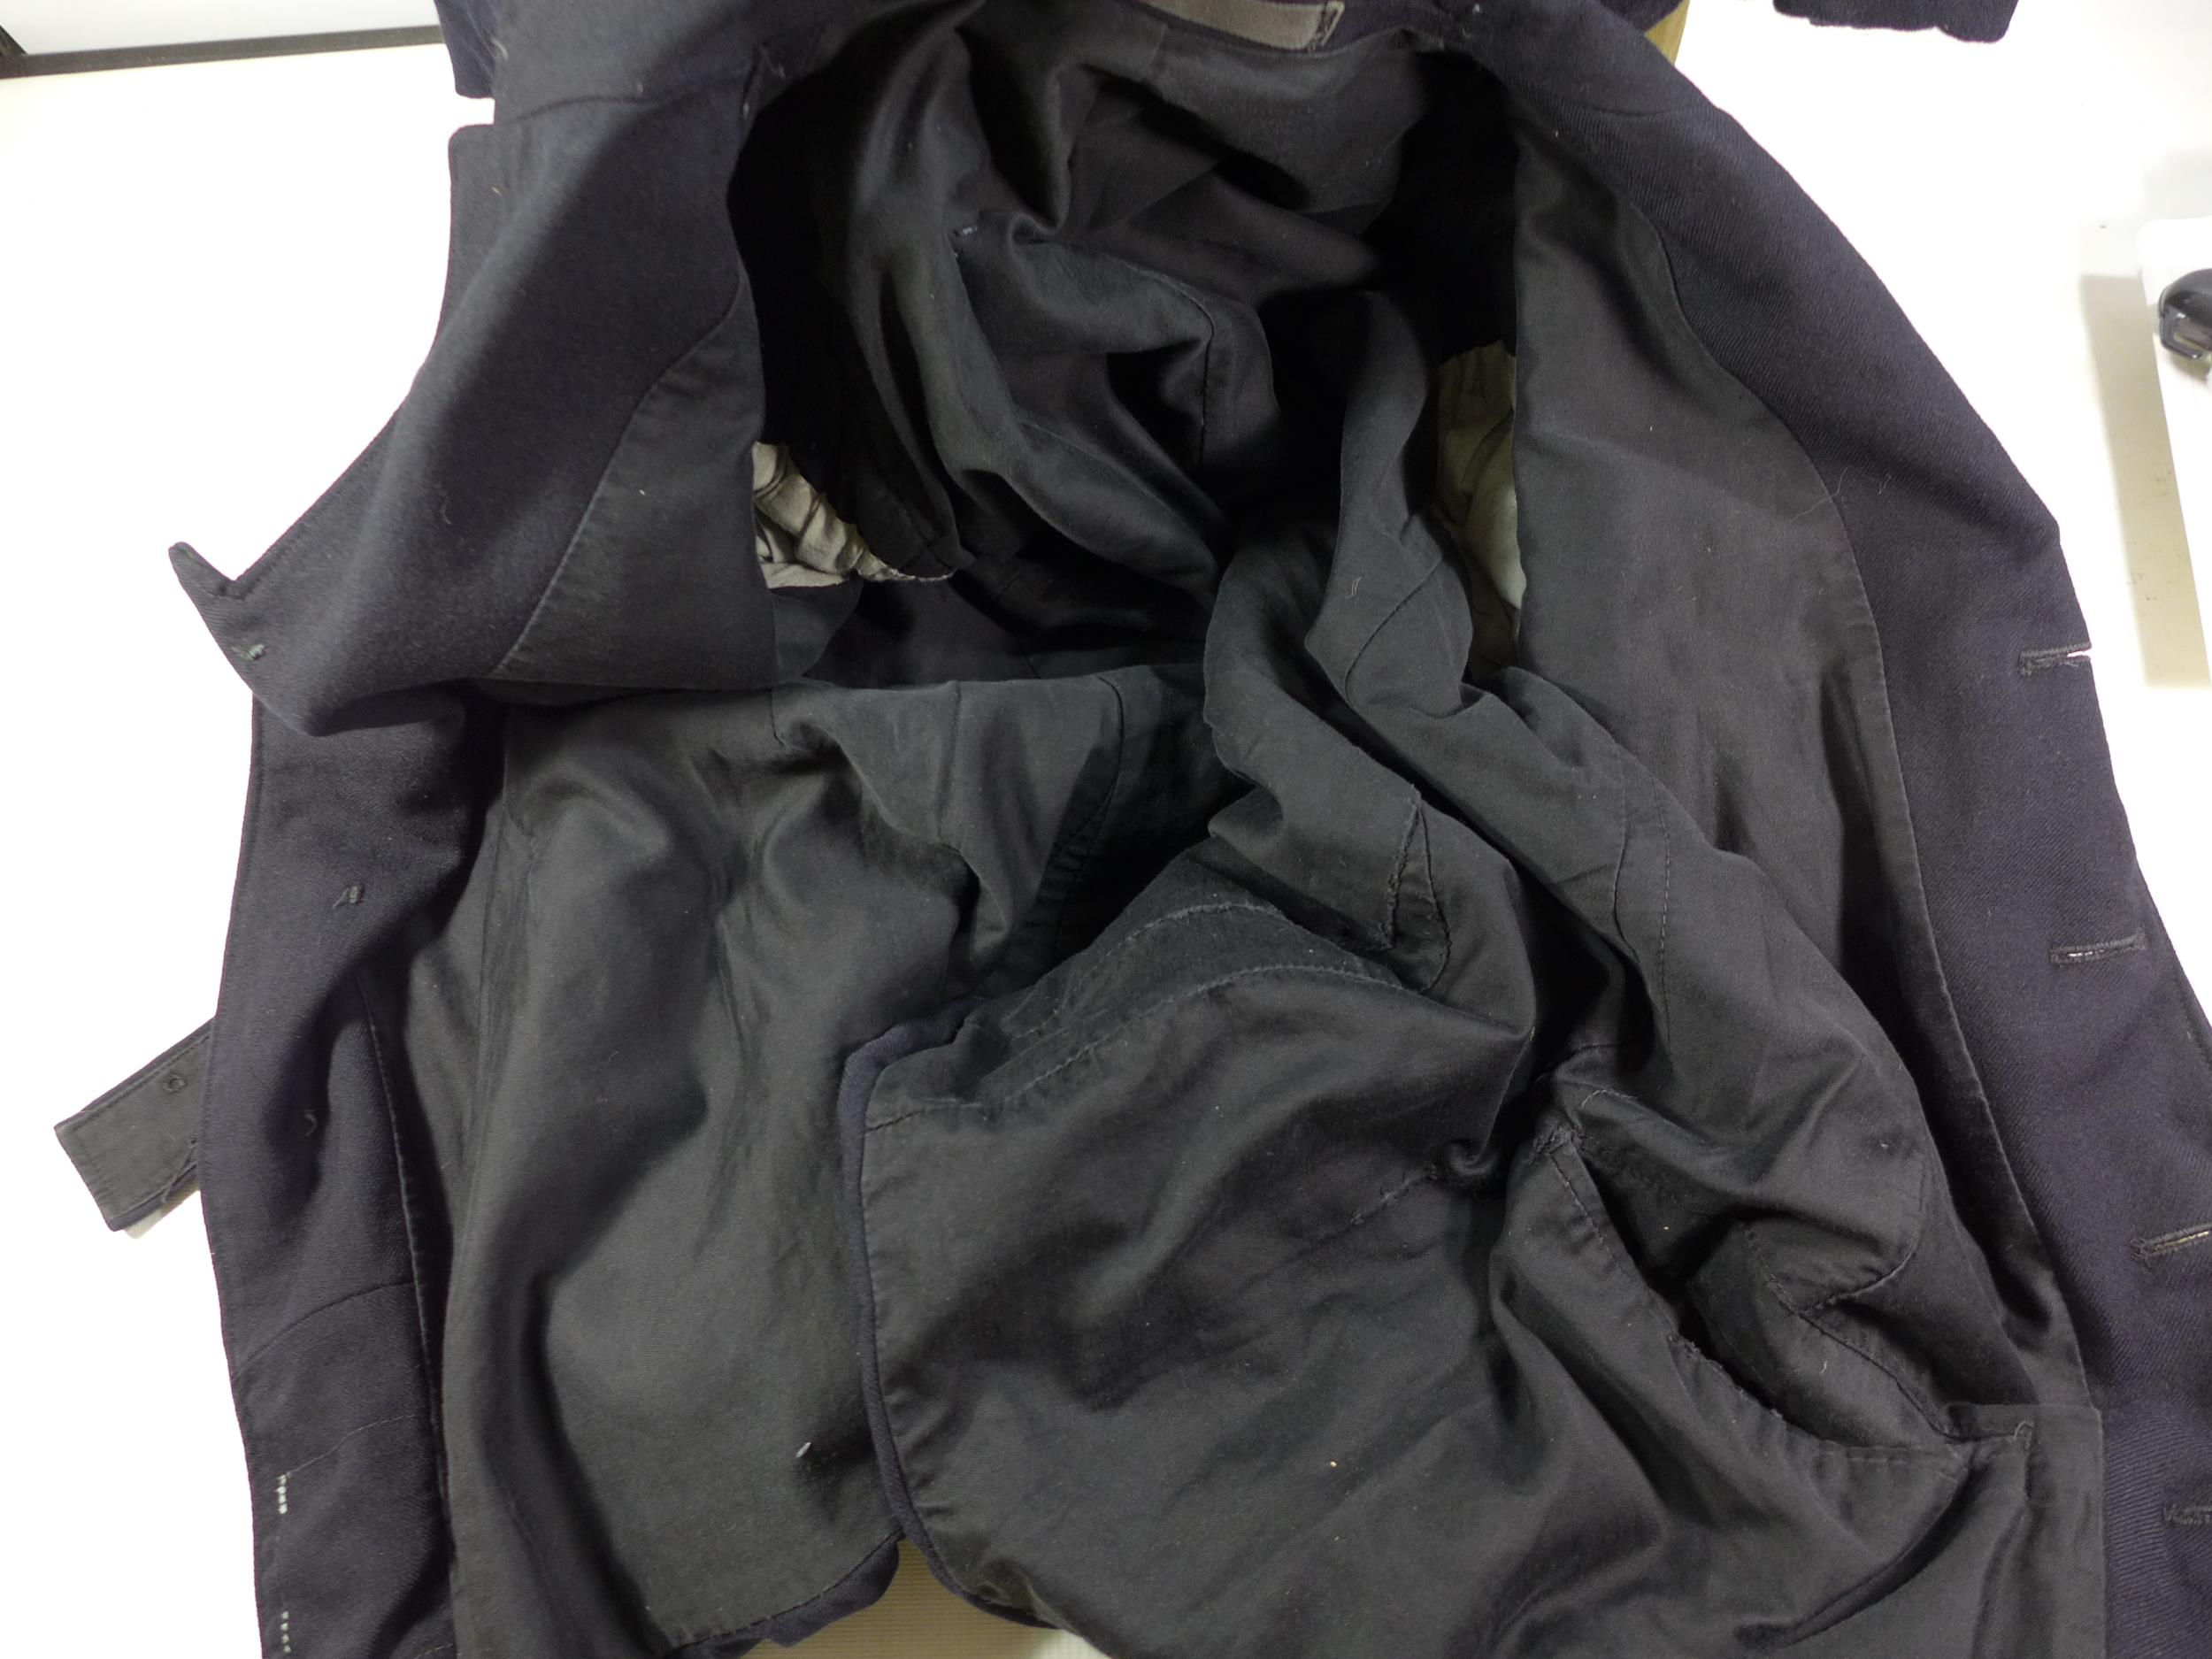 TWO MANCHESTER SHIP CANAL POLICEMANS JACKETS - Image 4 of 5